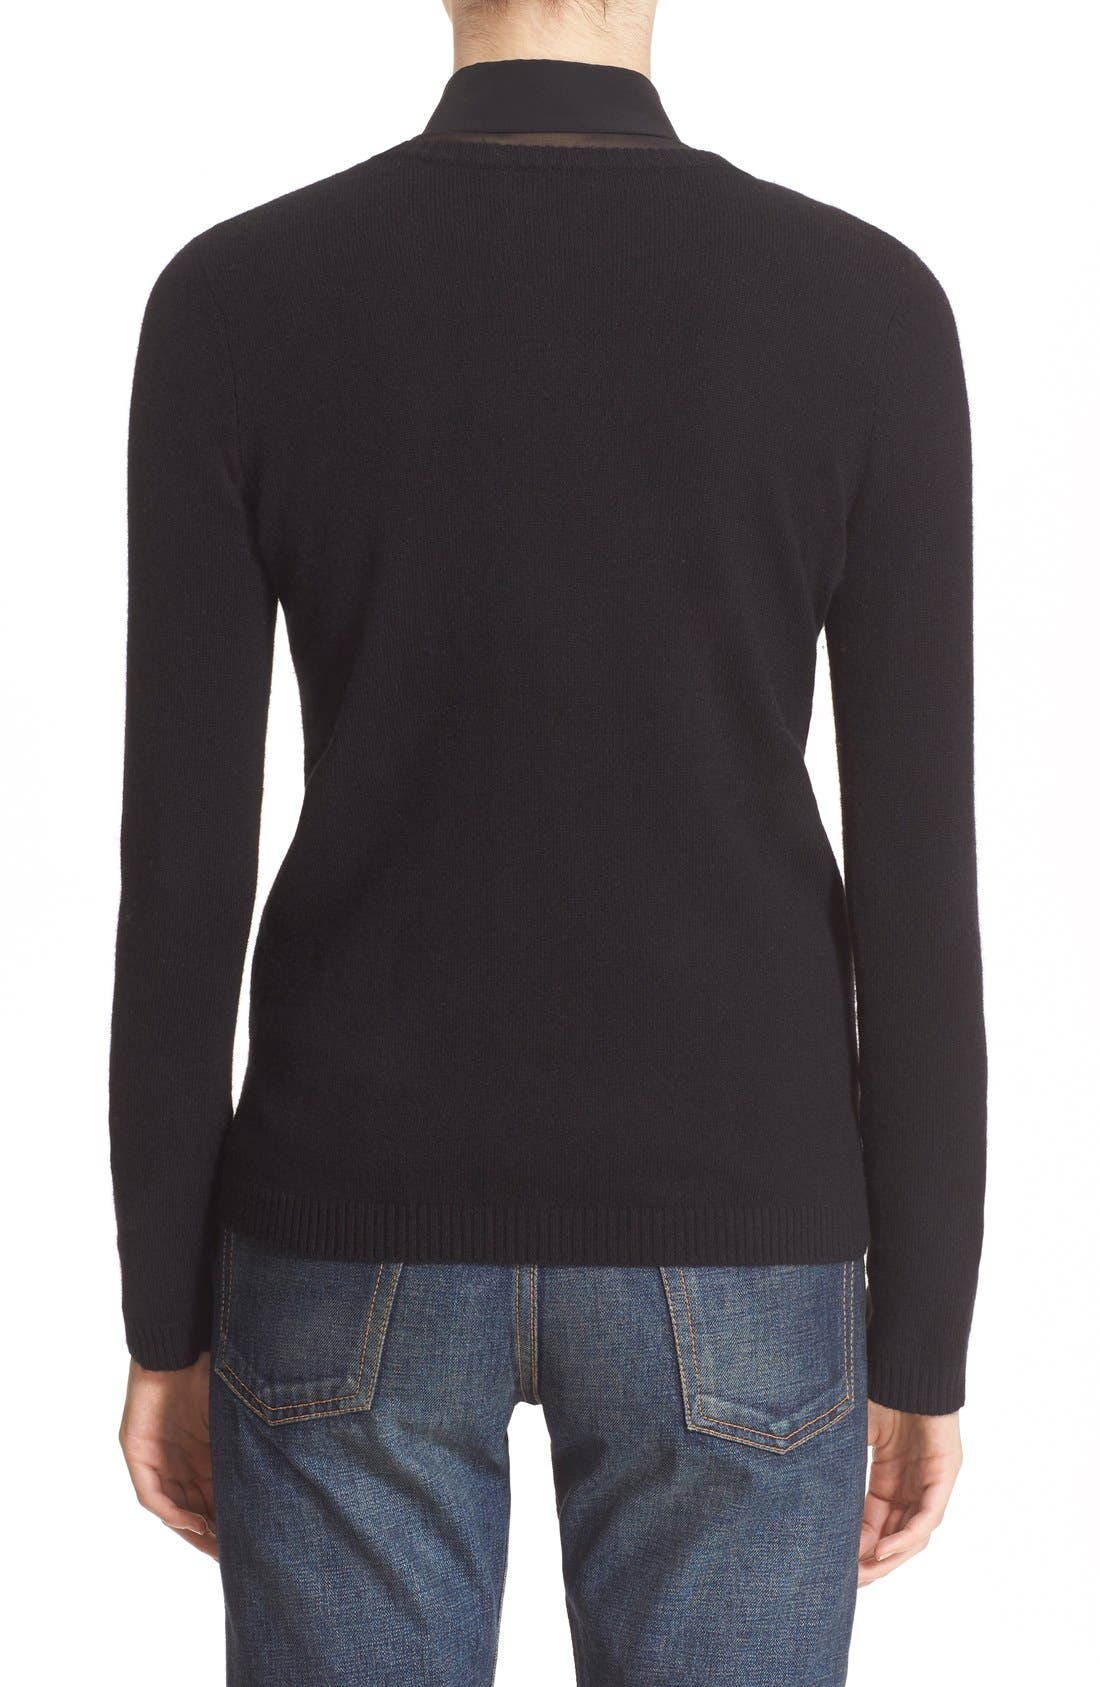 '1970' Wool Sweater,                             Alternate thumbnail 5, color,                             001